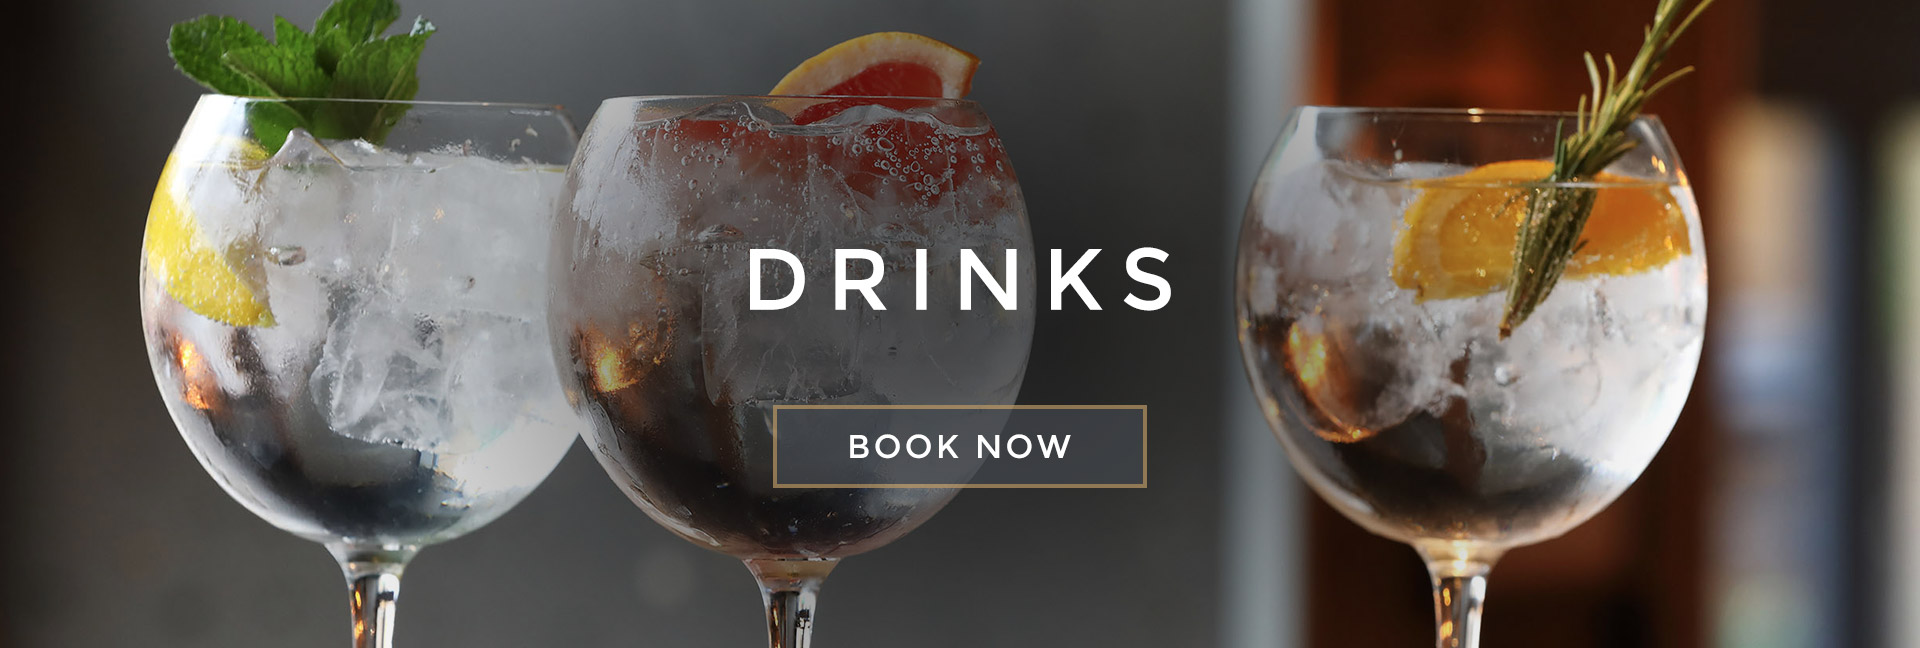 Drinks at All Bar One Houndsditch - Book your table